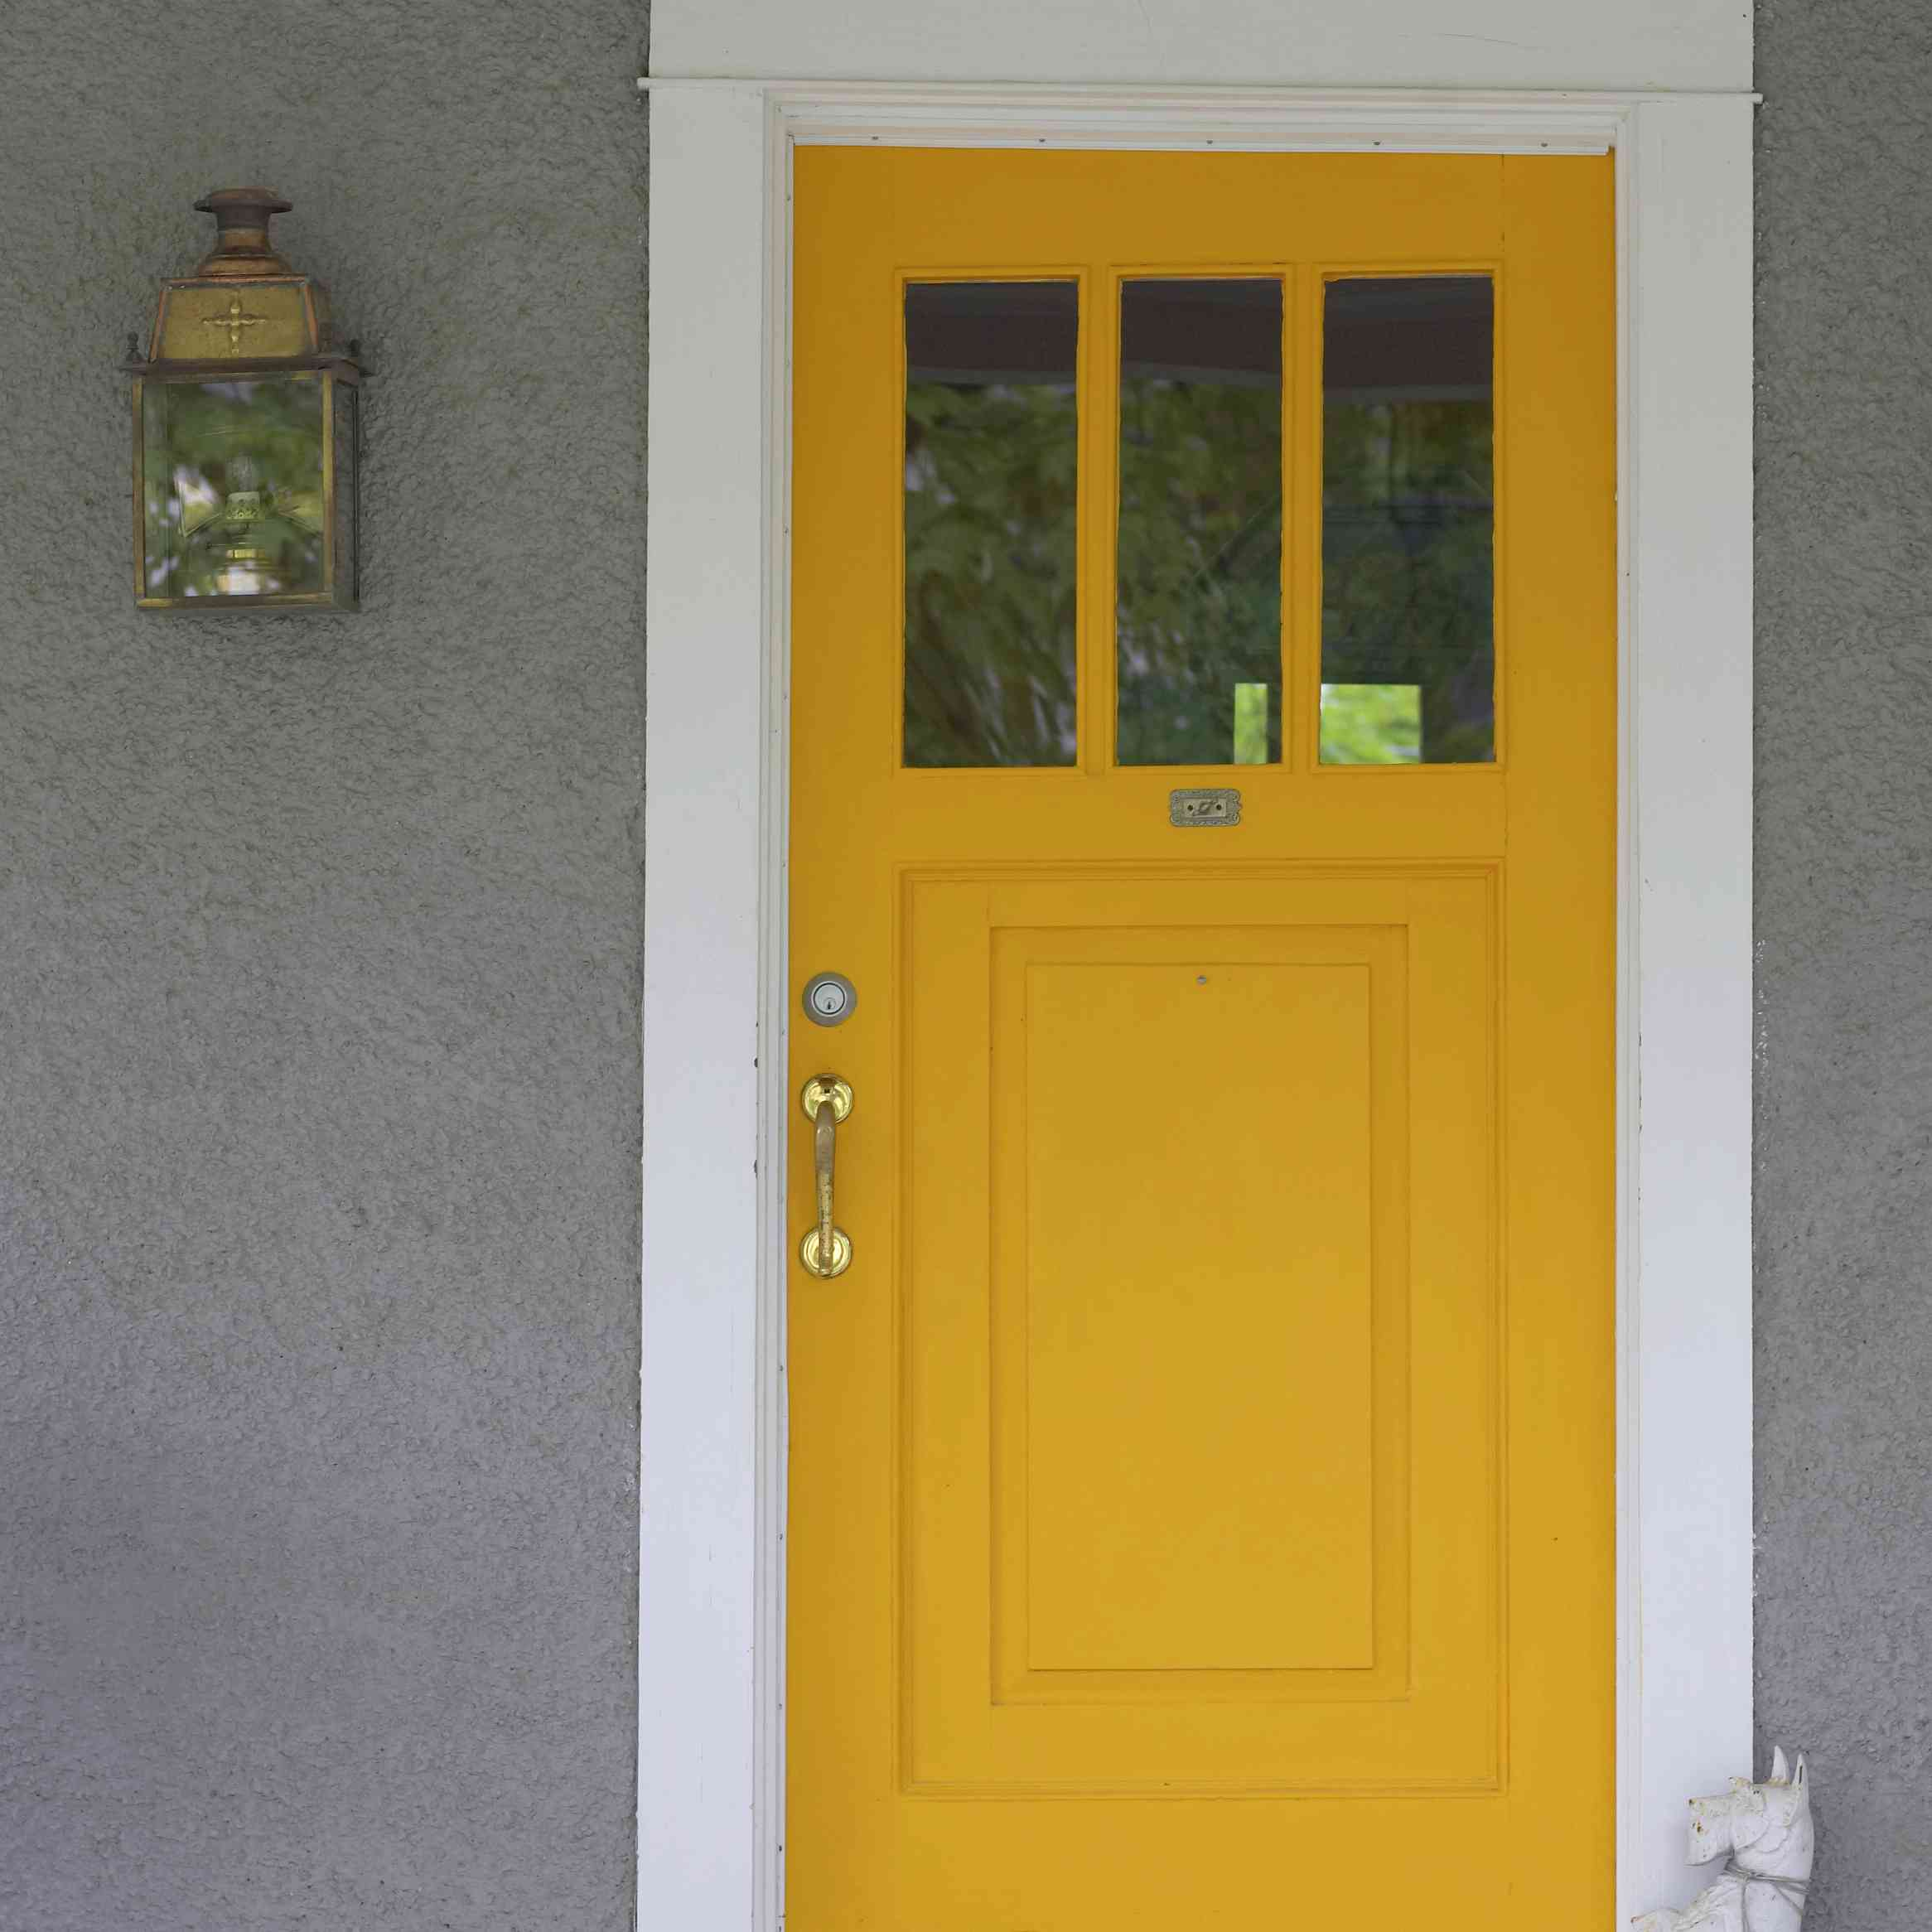 Residential Front Yellow Door. Old colonial house with porch, in North America